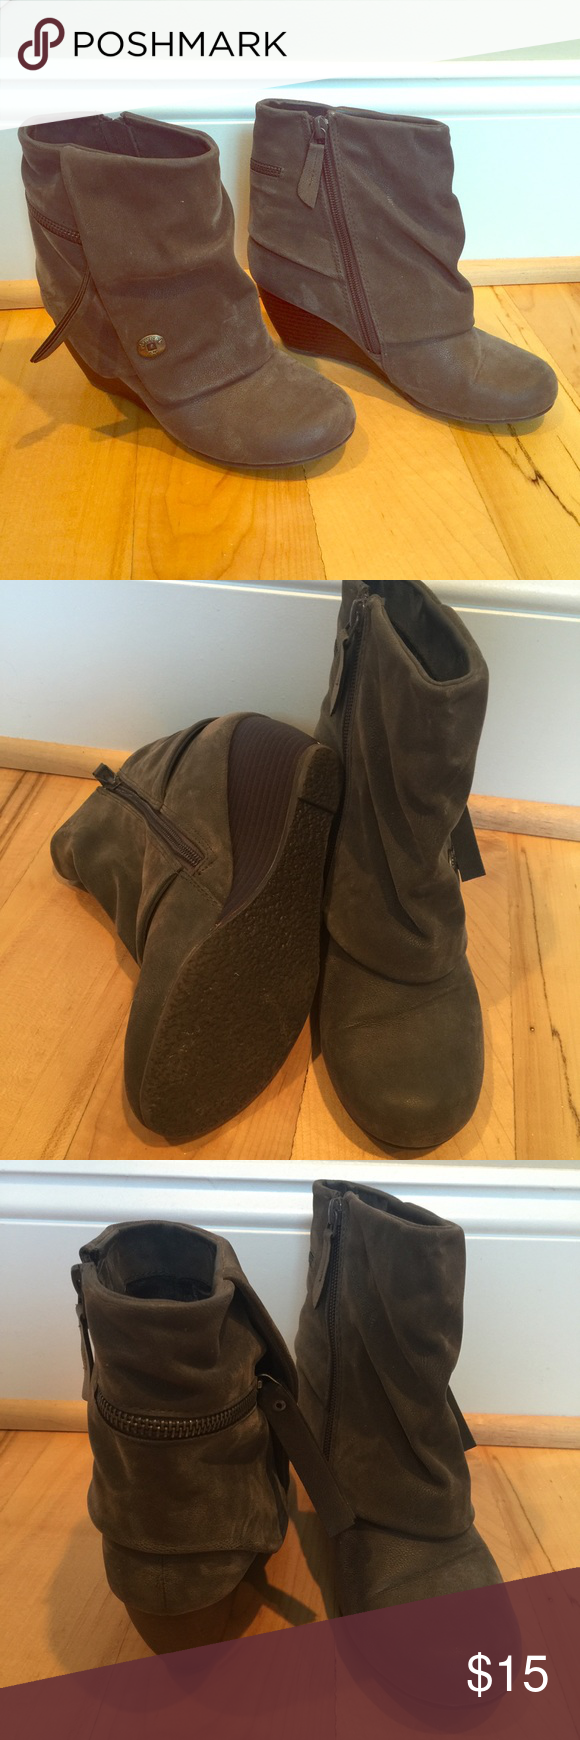 Gray Suede Trendy Ankle Boots by Blowfish Super cute grey suede ankle boots with a side zip. Only worn a handful of time. No visible flaws and super comfy. Blowfish Shoes Ankle Boots & Booties